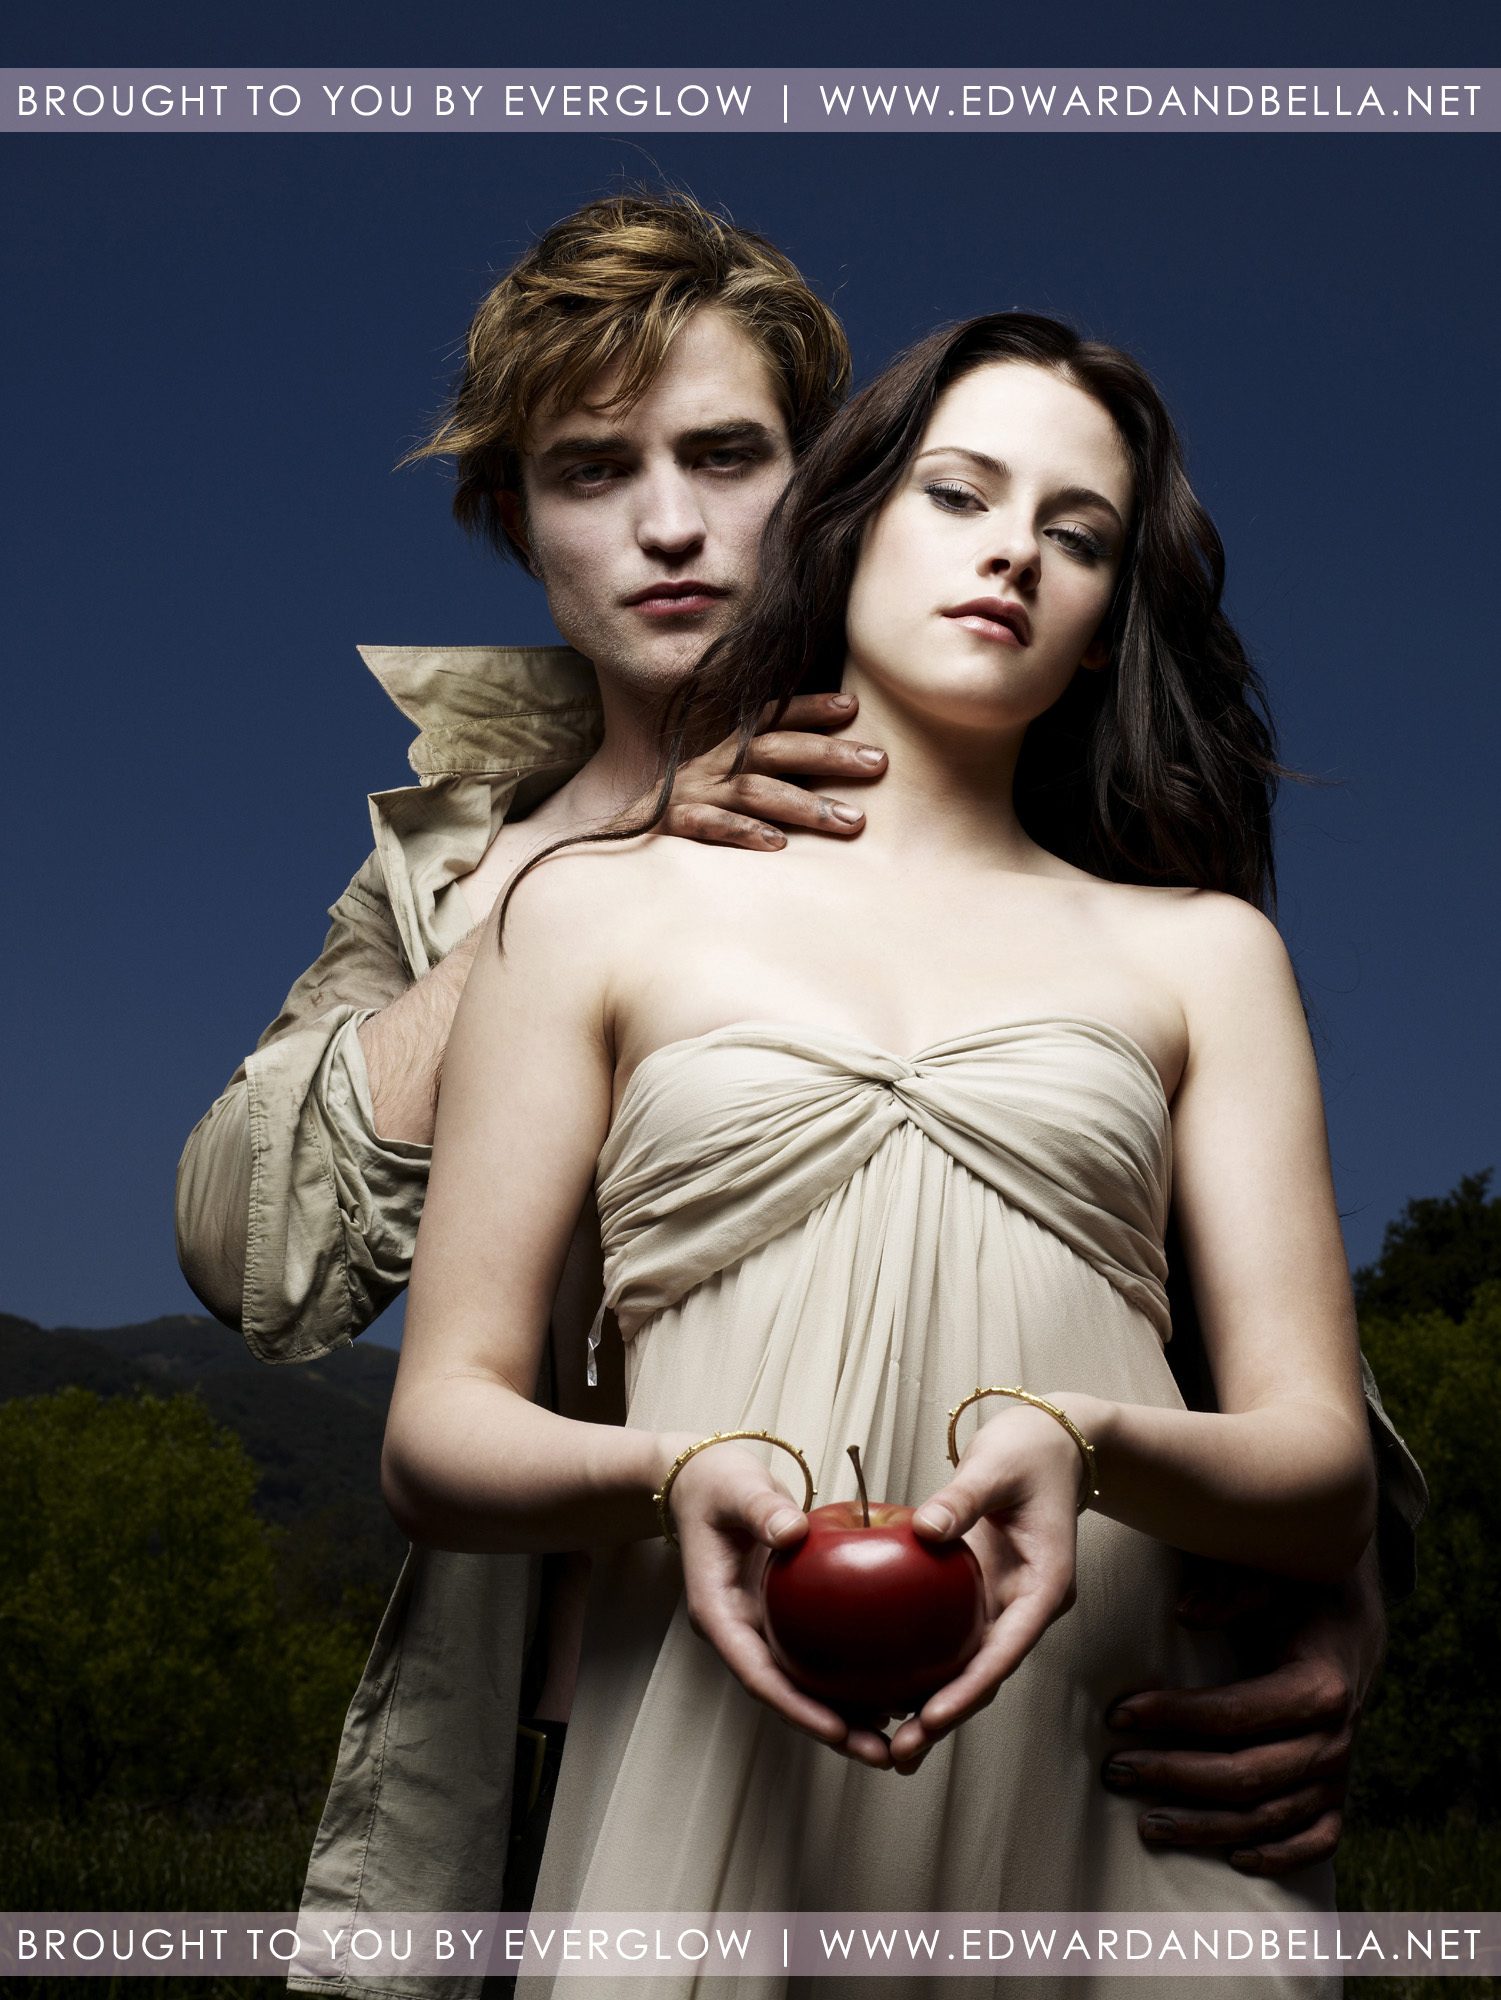 Edward and Bella (Entertainment Weekly Outtakes) huge HQ! - twilight-series photo